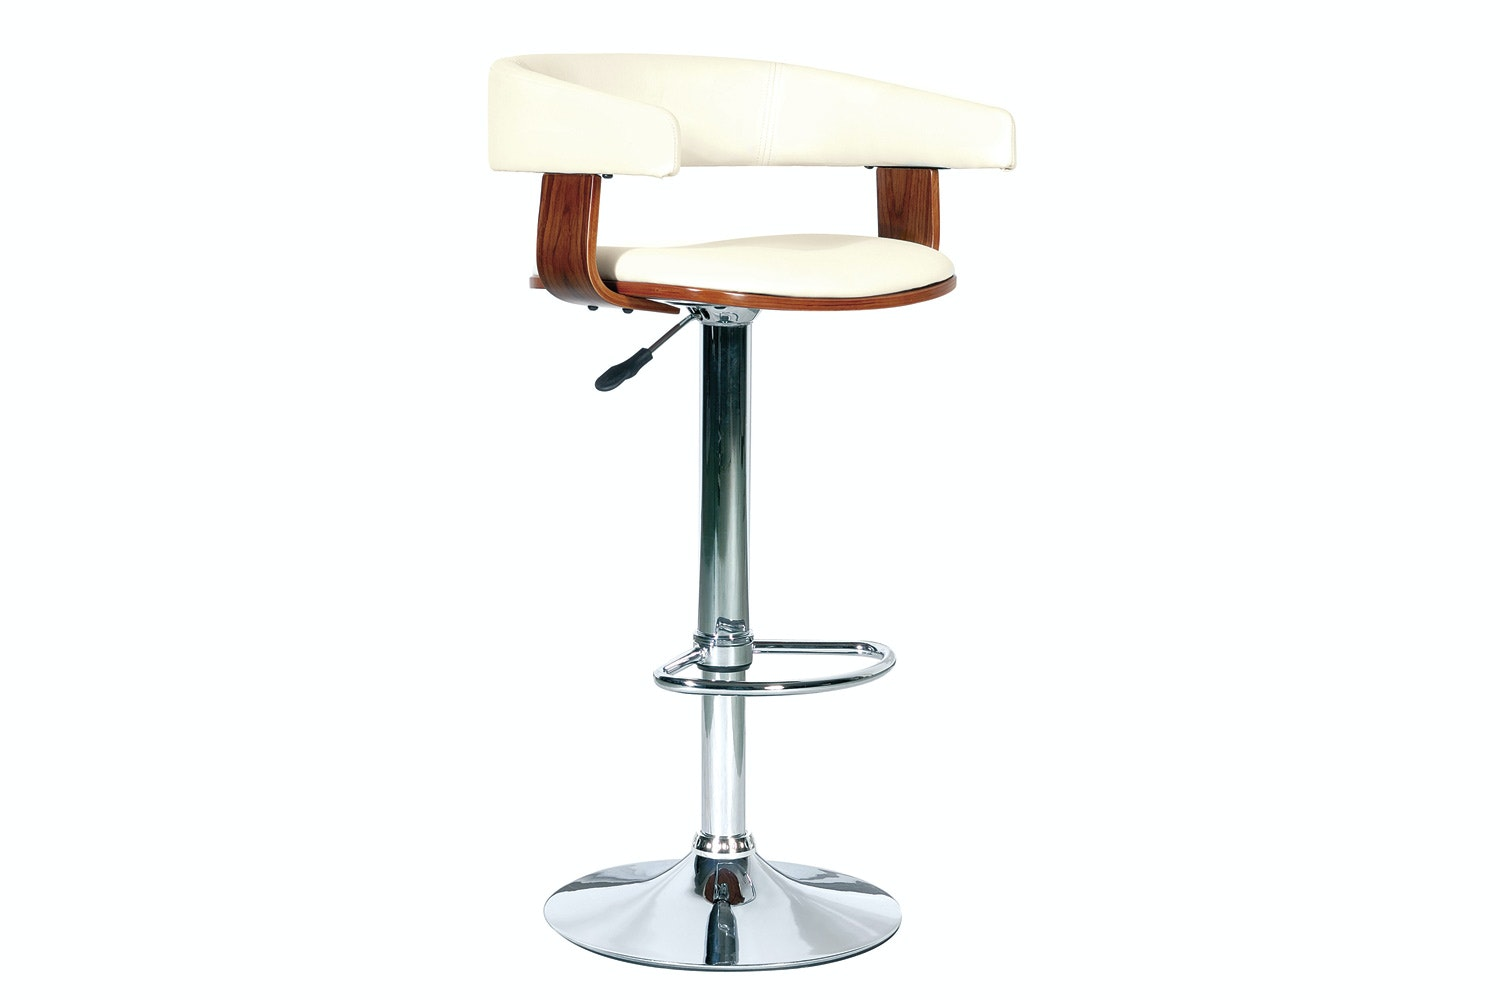 Tosca Bar Stool  sc 1 st  Harvey Norman & Tosca Bar Stool | Shop at Harvey Norman | Ireland islam-shia.org